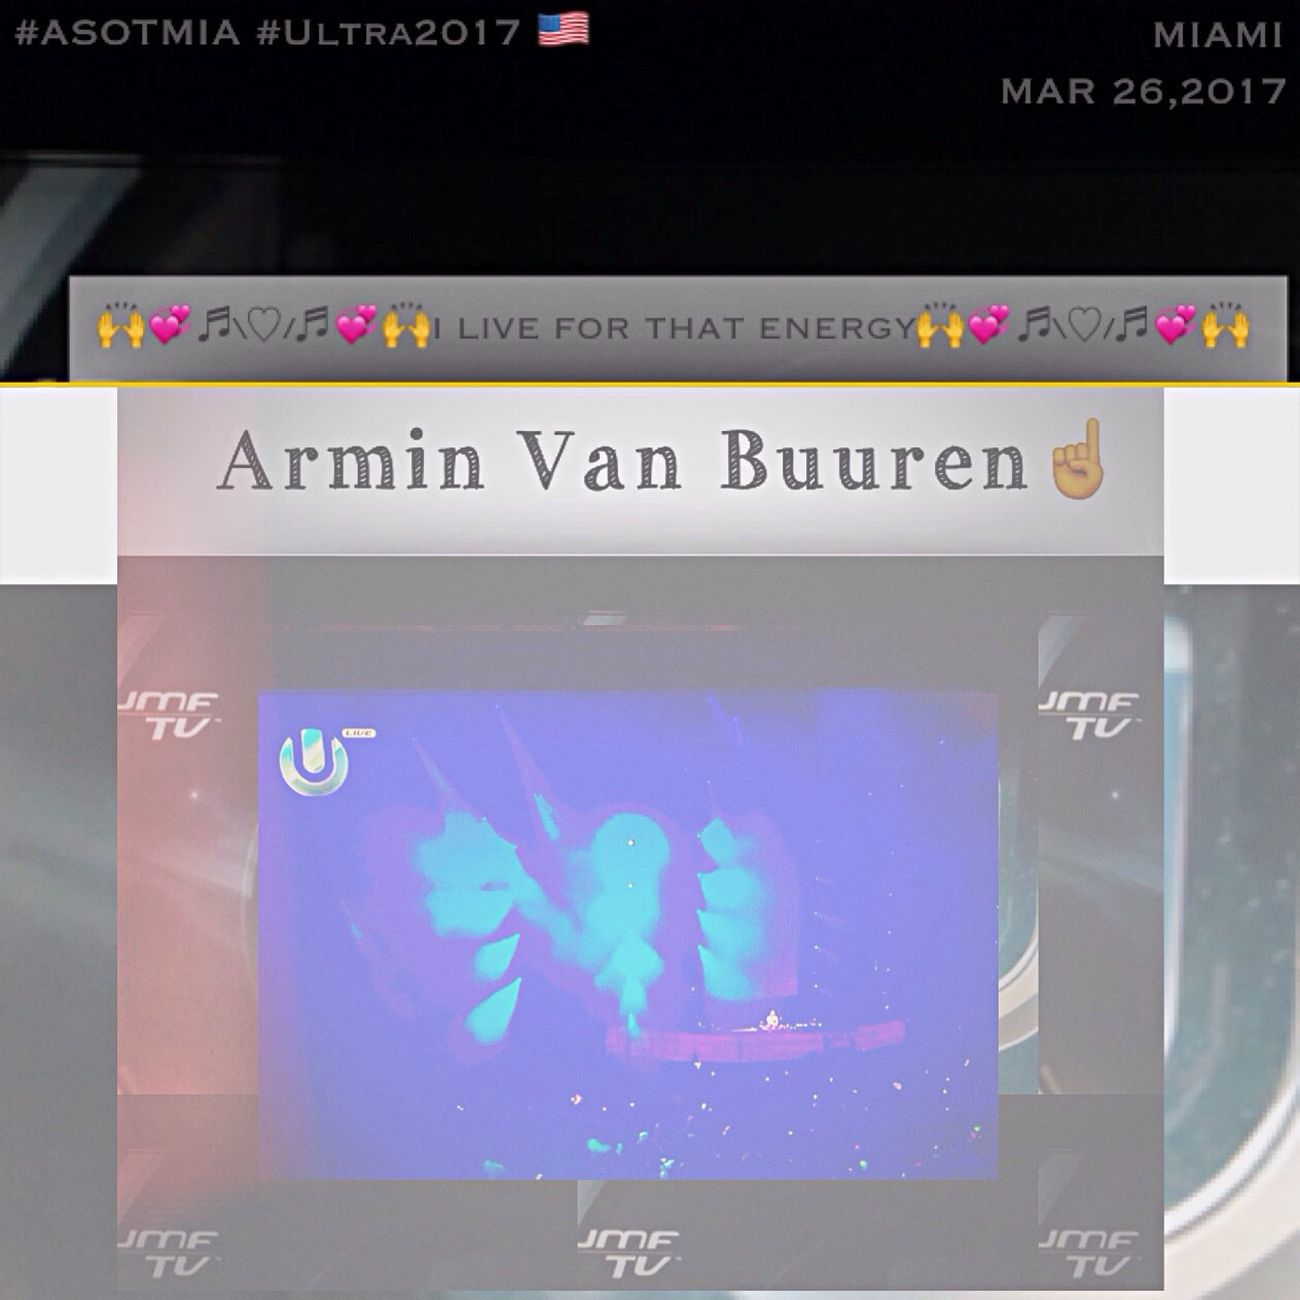 I Loved Your Energy With ASOTMIA 💖 A State Of Trance Ultra Music Festival Miami 🙌 💞 ♬\❤️ 🇺🇸 ❤️/♬ 💞 🙌 Thank You So Much My Idol Armin Van Buuren 🙏🏻 ☝🏻️ 🙏🏻 Ultra 2017 💙 ❤️